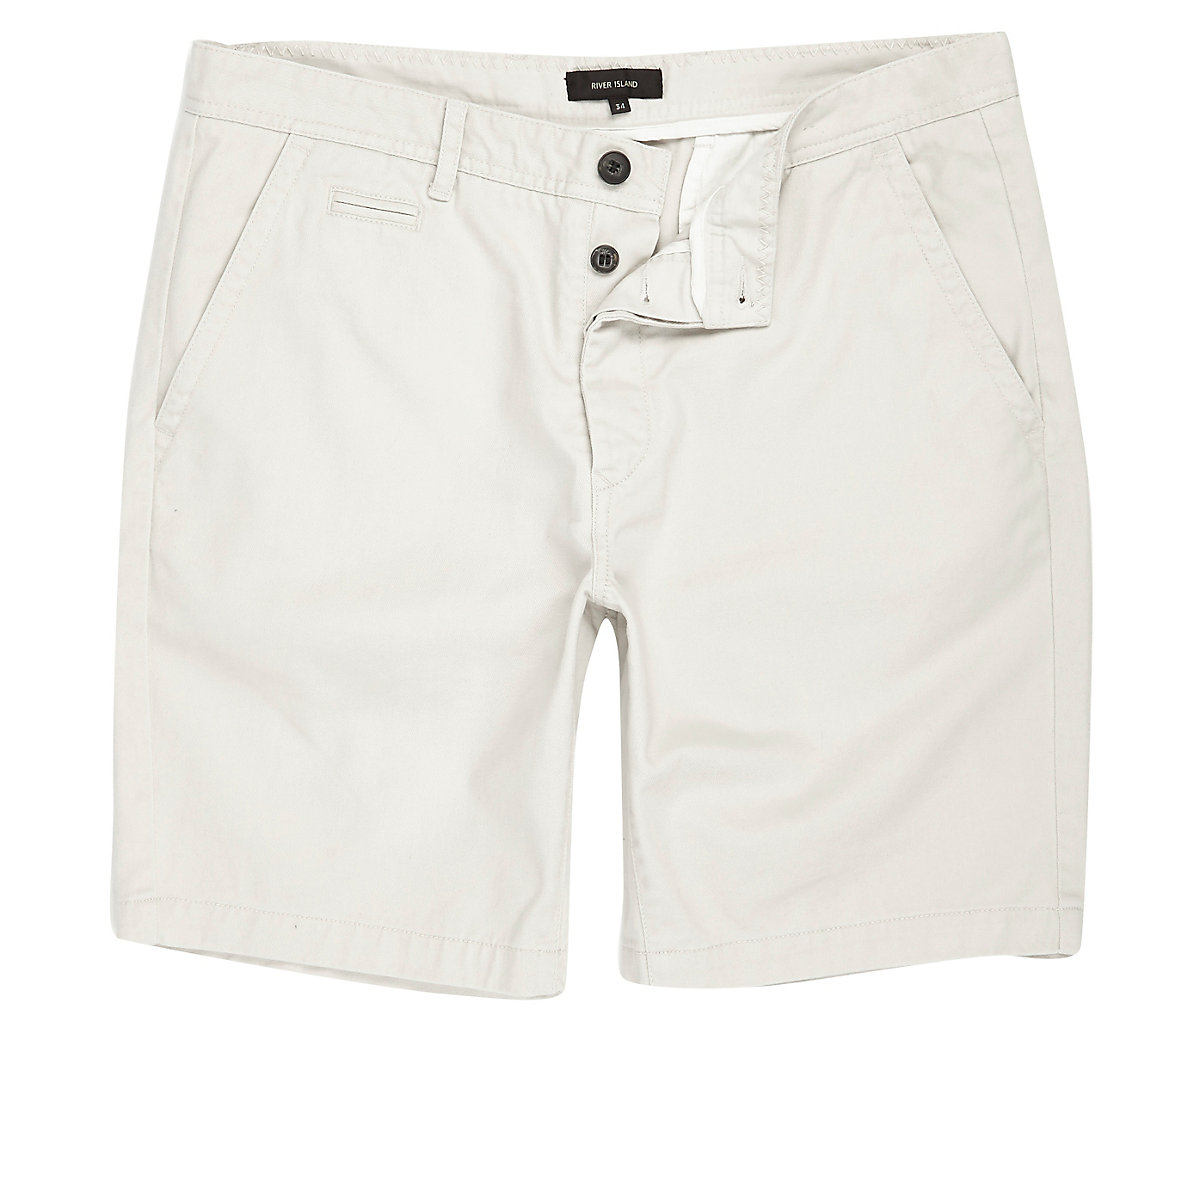 Stone slim fit chino shorts